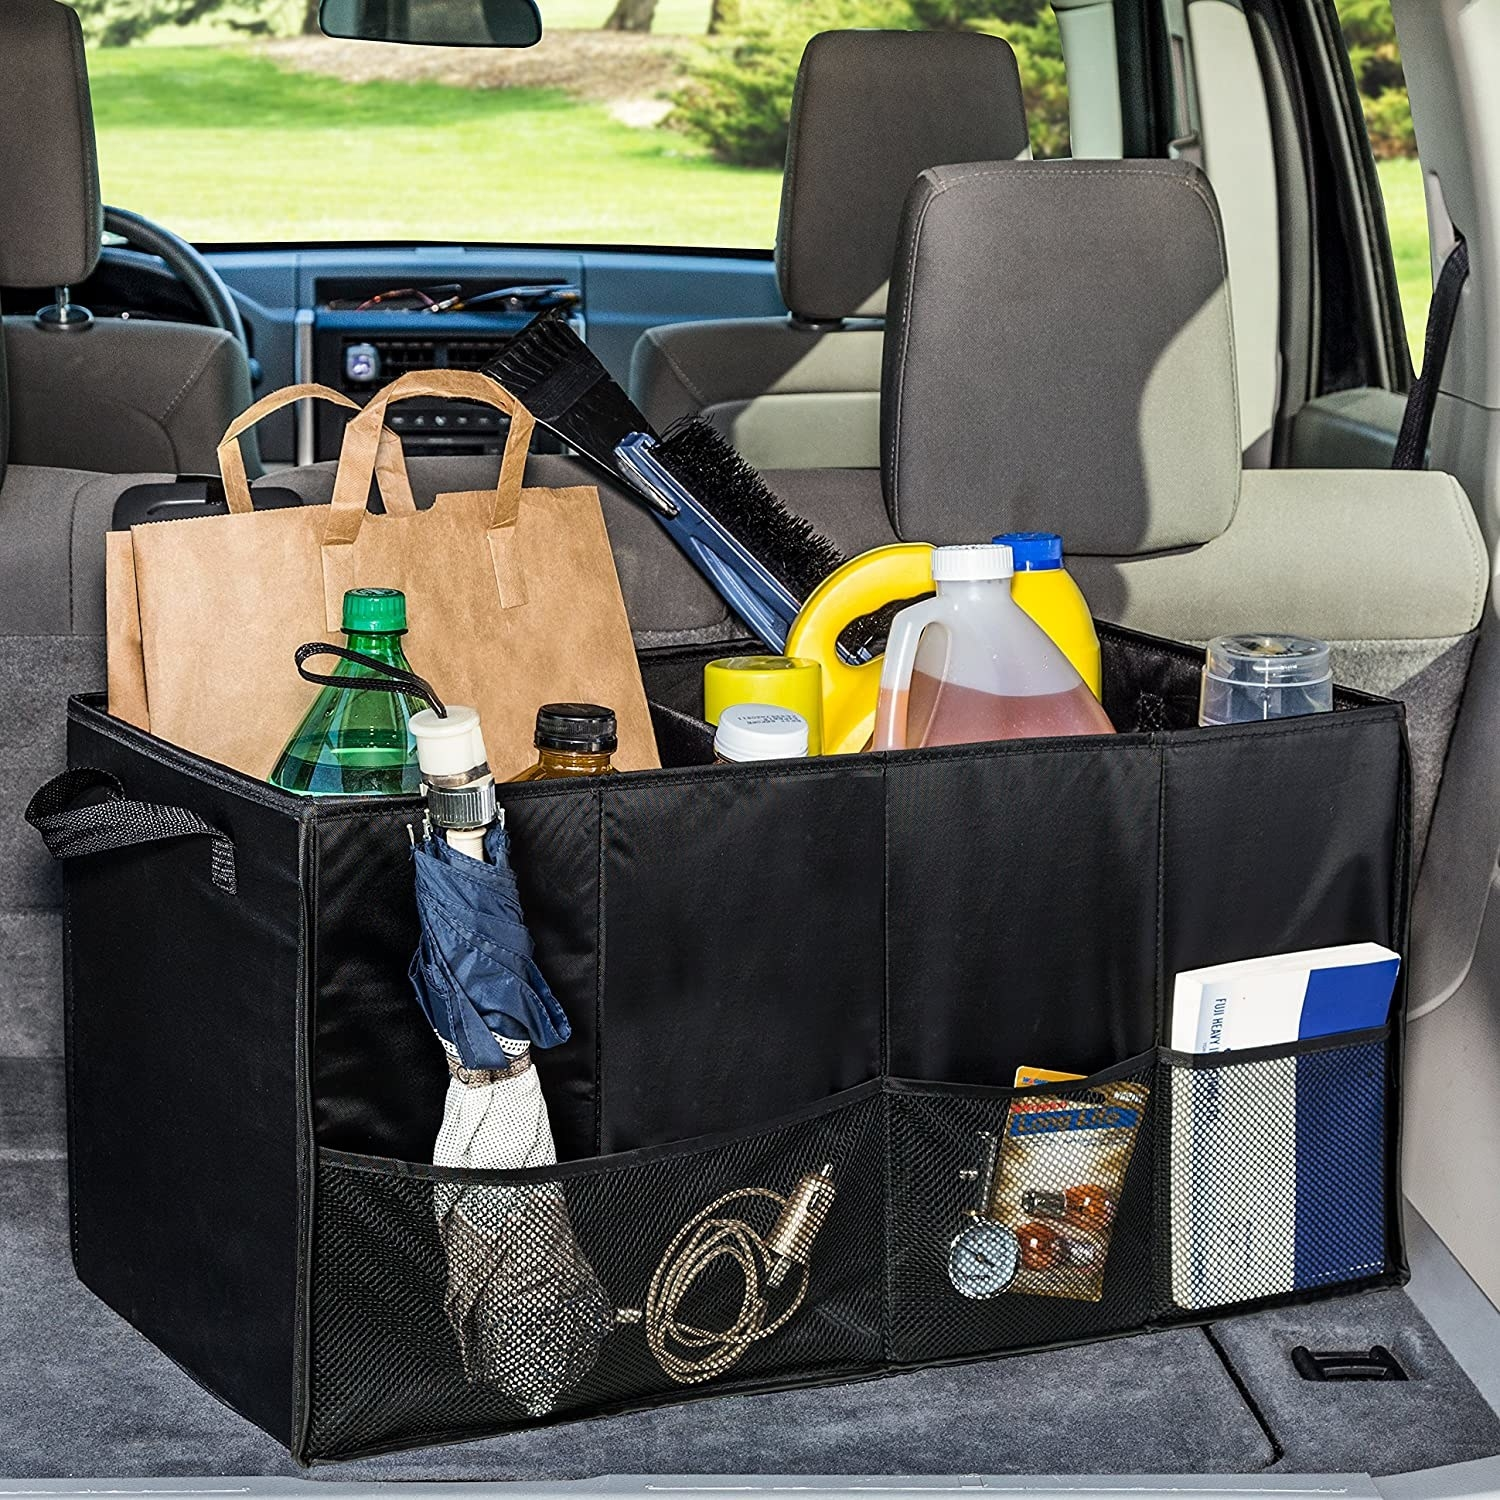 A black trunk organizer inside a car trunk filled with car accessories, groceries, an umbrella and more in its mesh side pockets